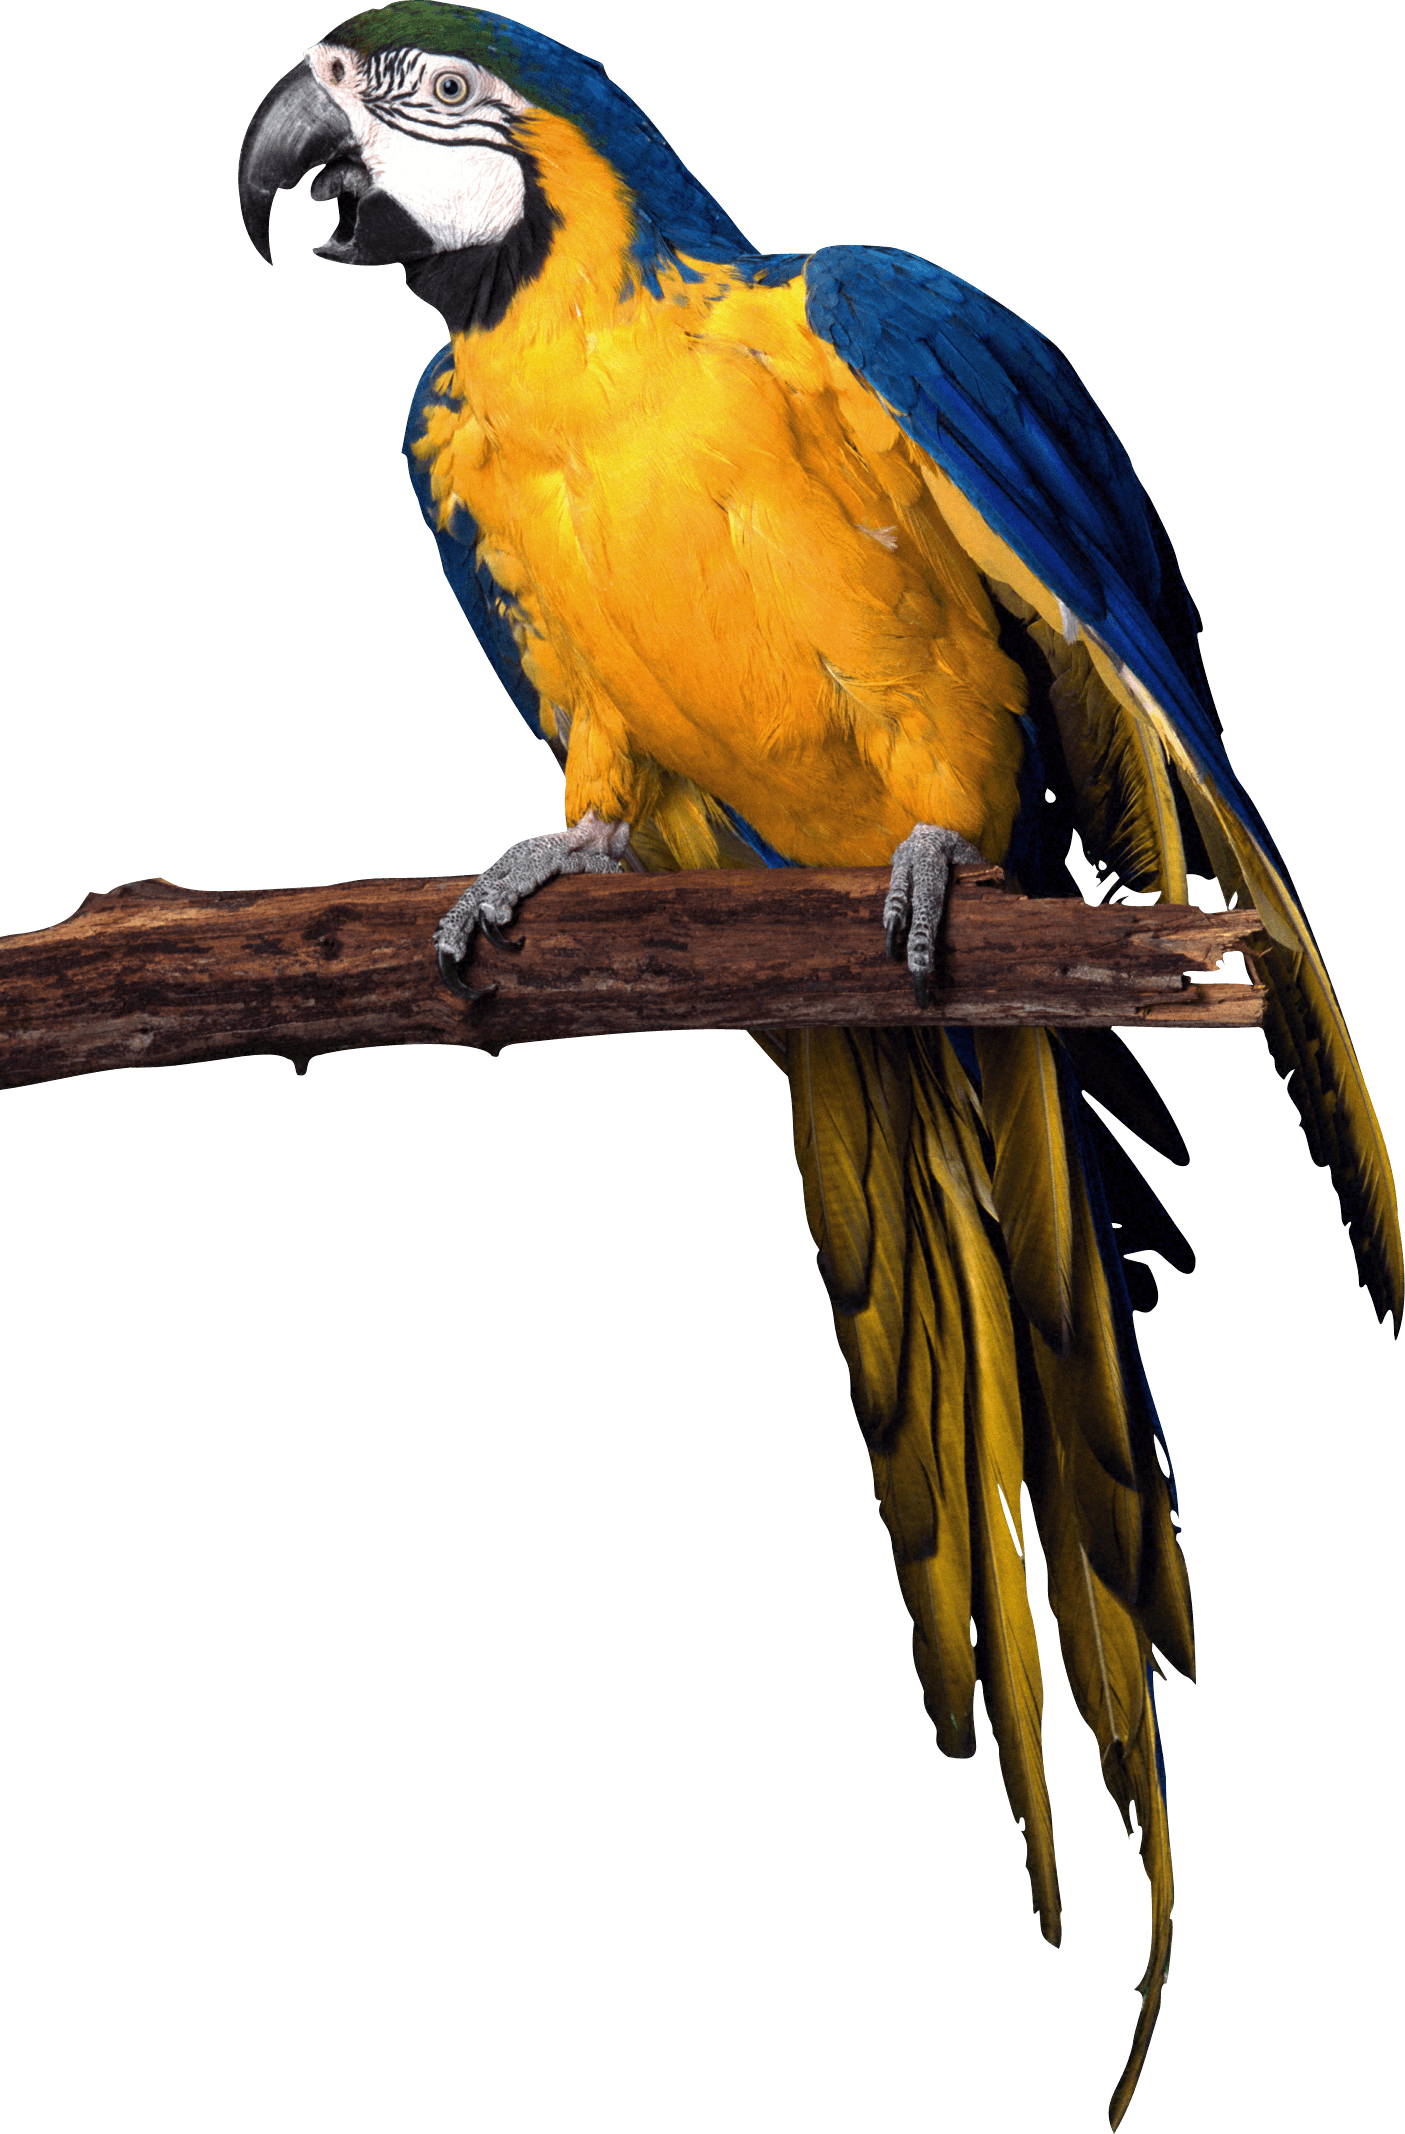 Yellow Blue Pirate Parrot Png Image Parrot Image Parrot Animals Images